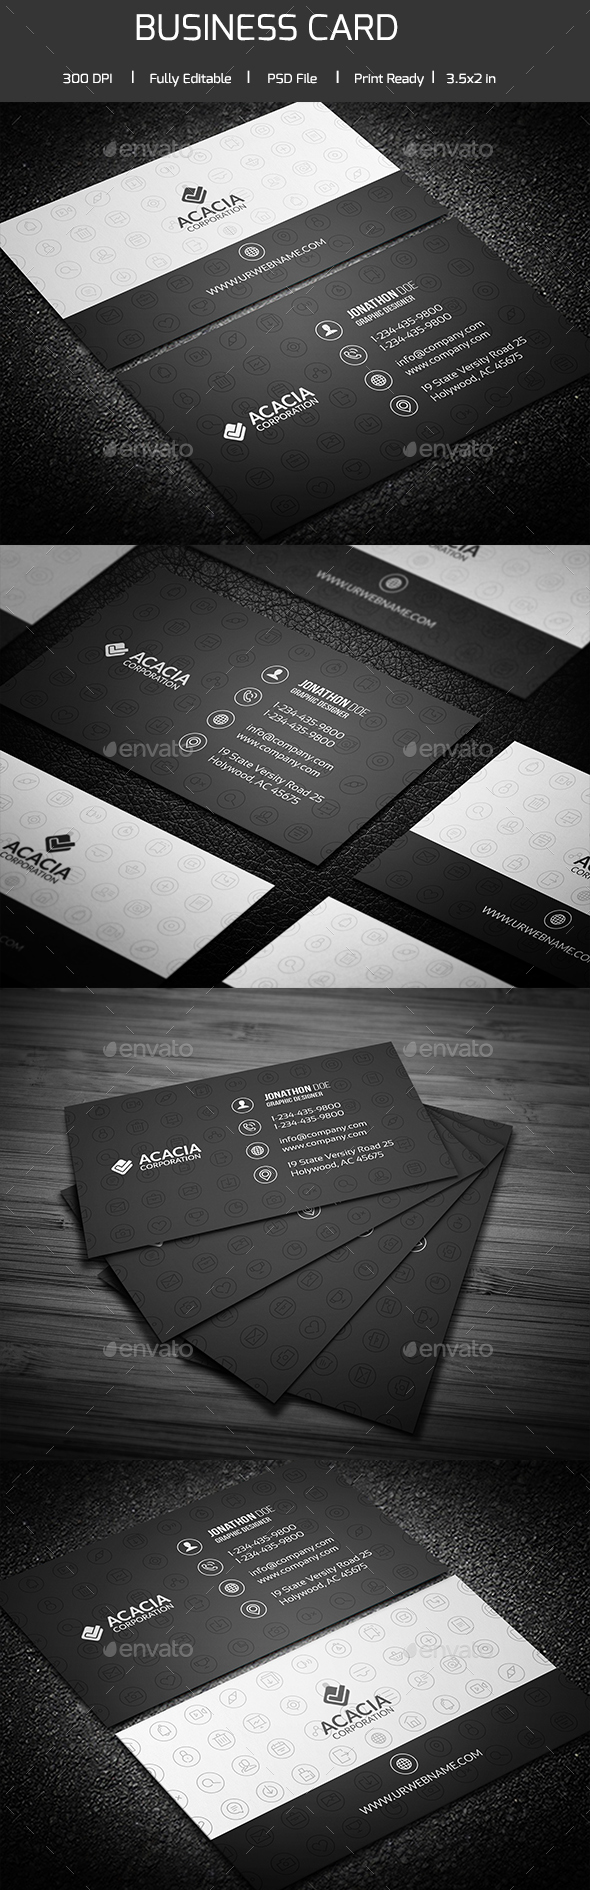 Social Icon Business Card - Corporate Business Cards